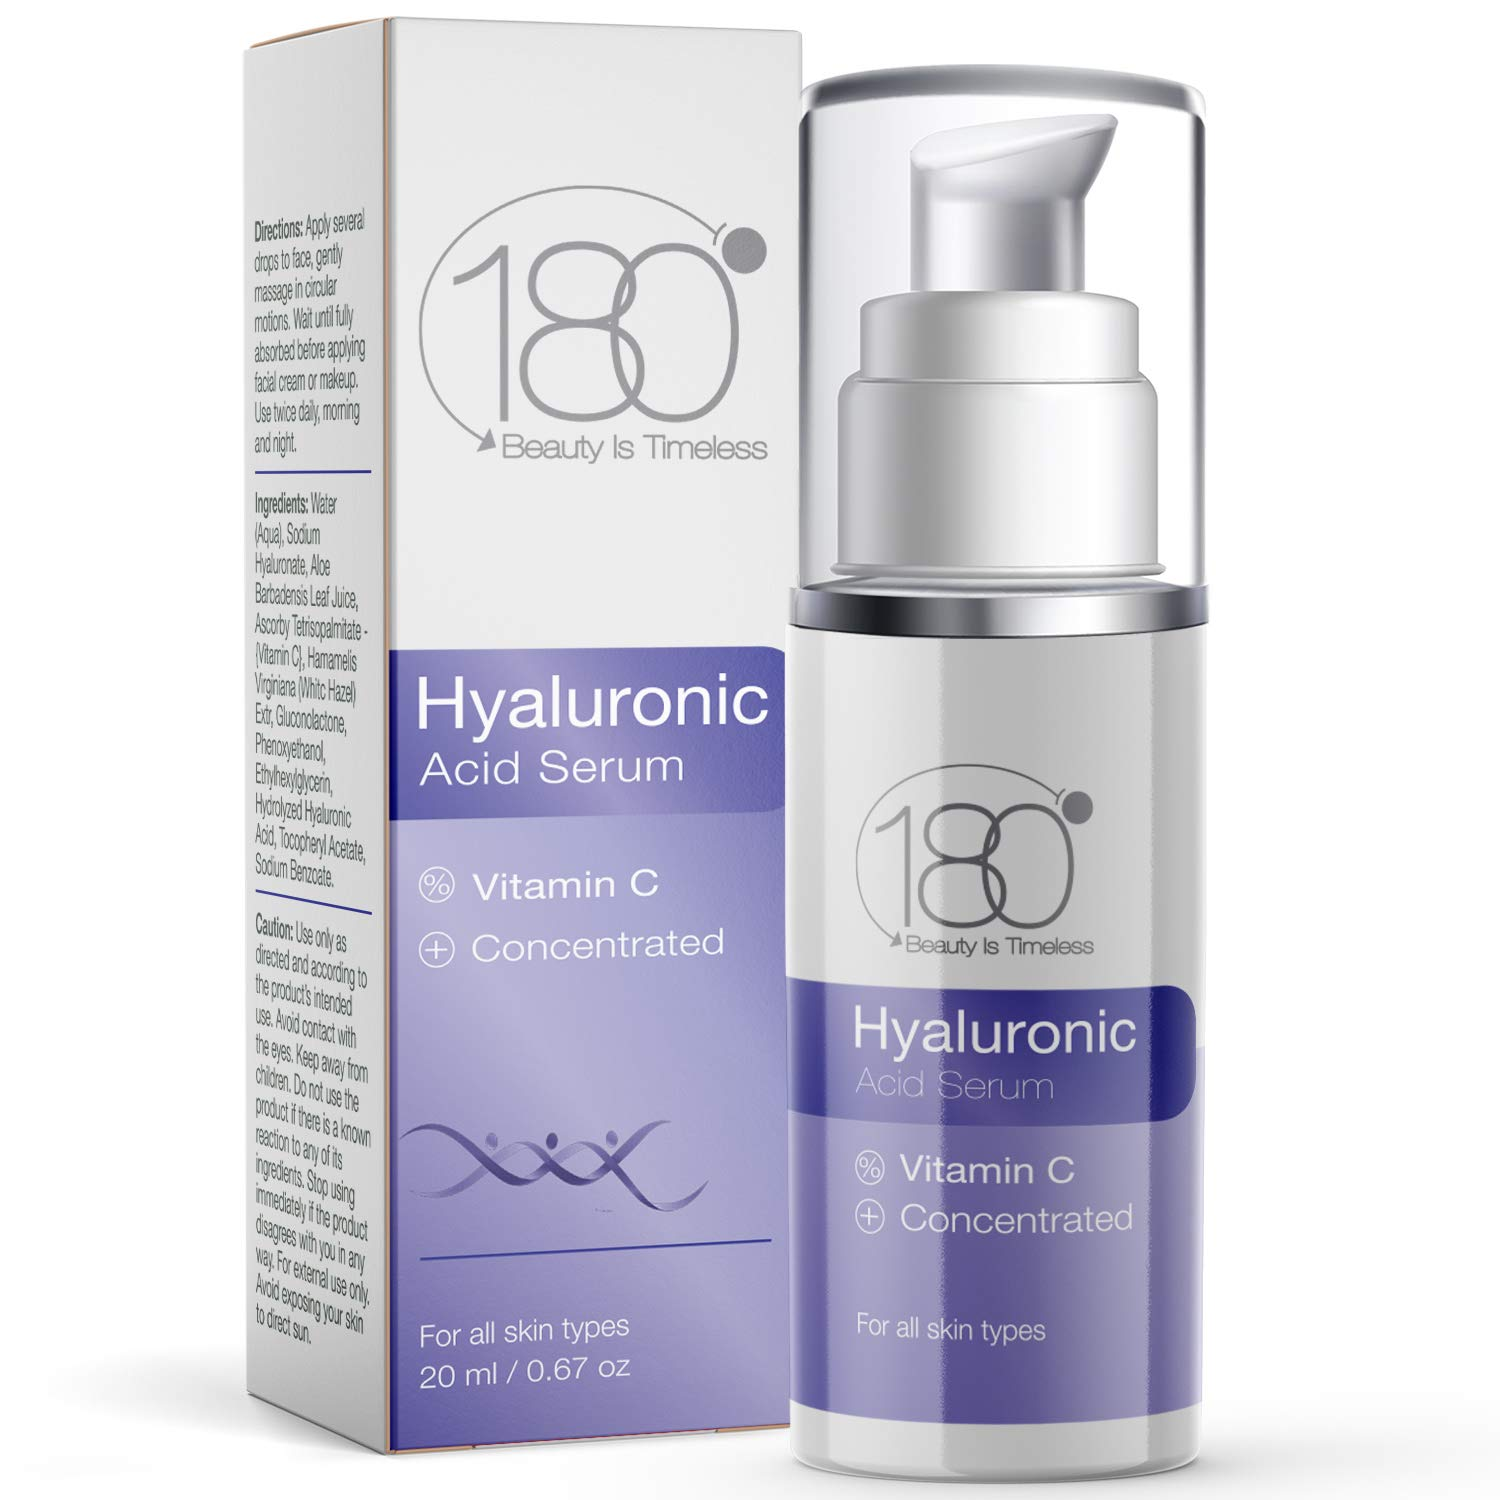 DAYS OF DEALS - 180 Cosmetics Hyaluronic Acid Serum & Vi…